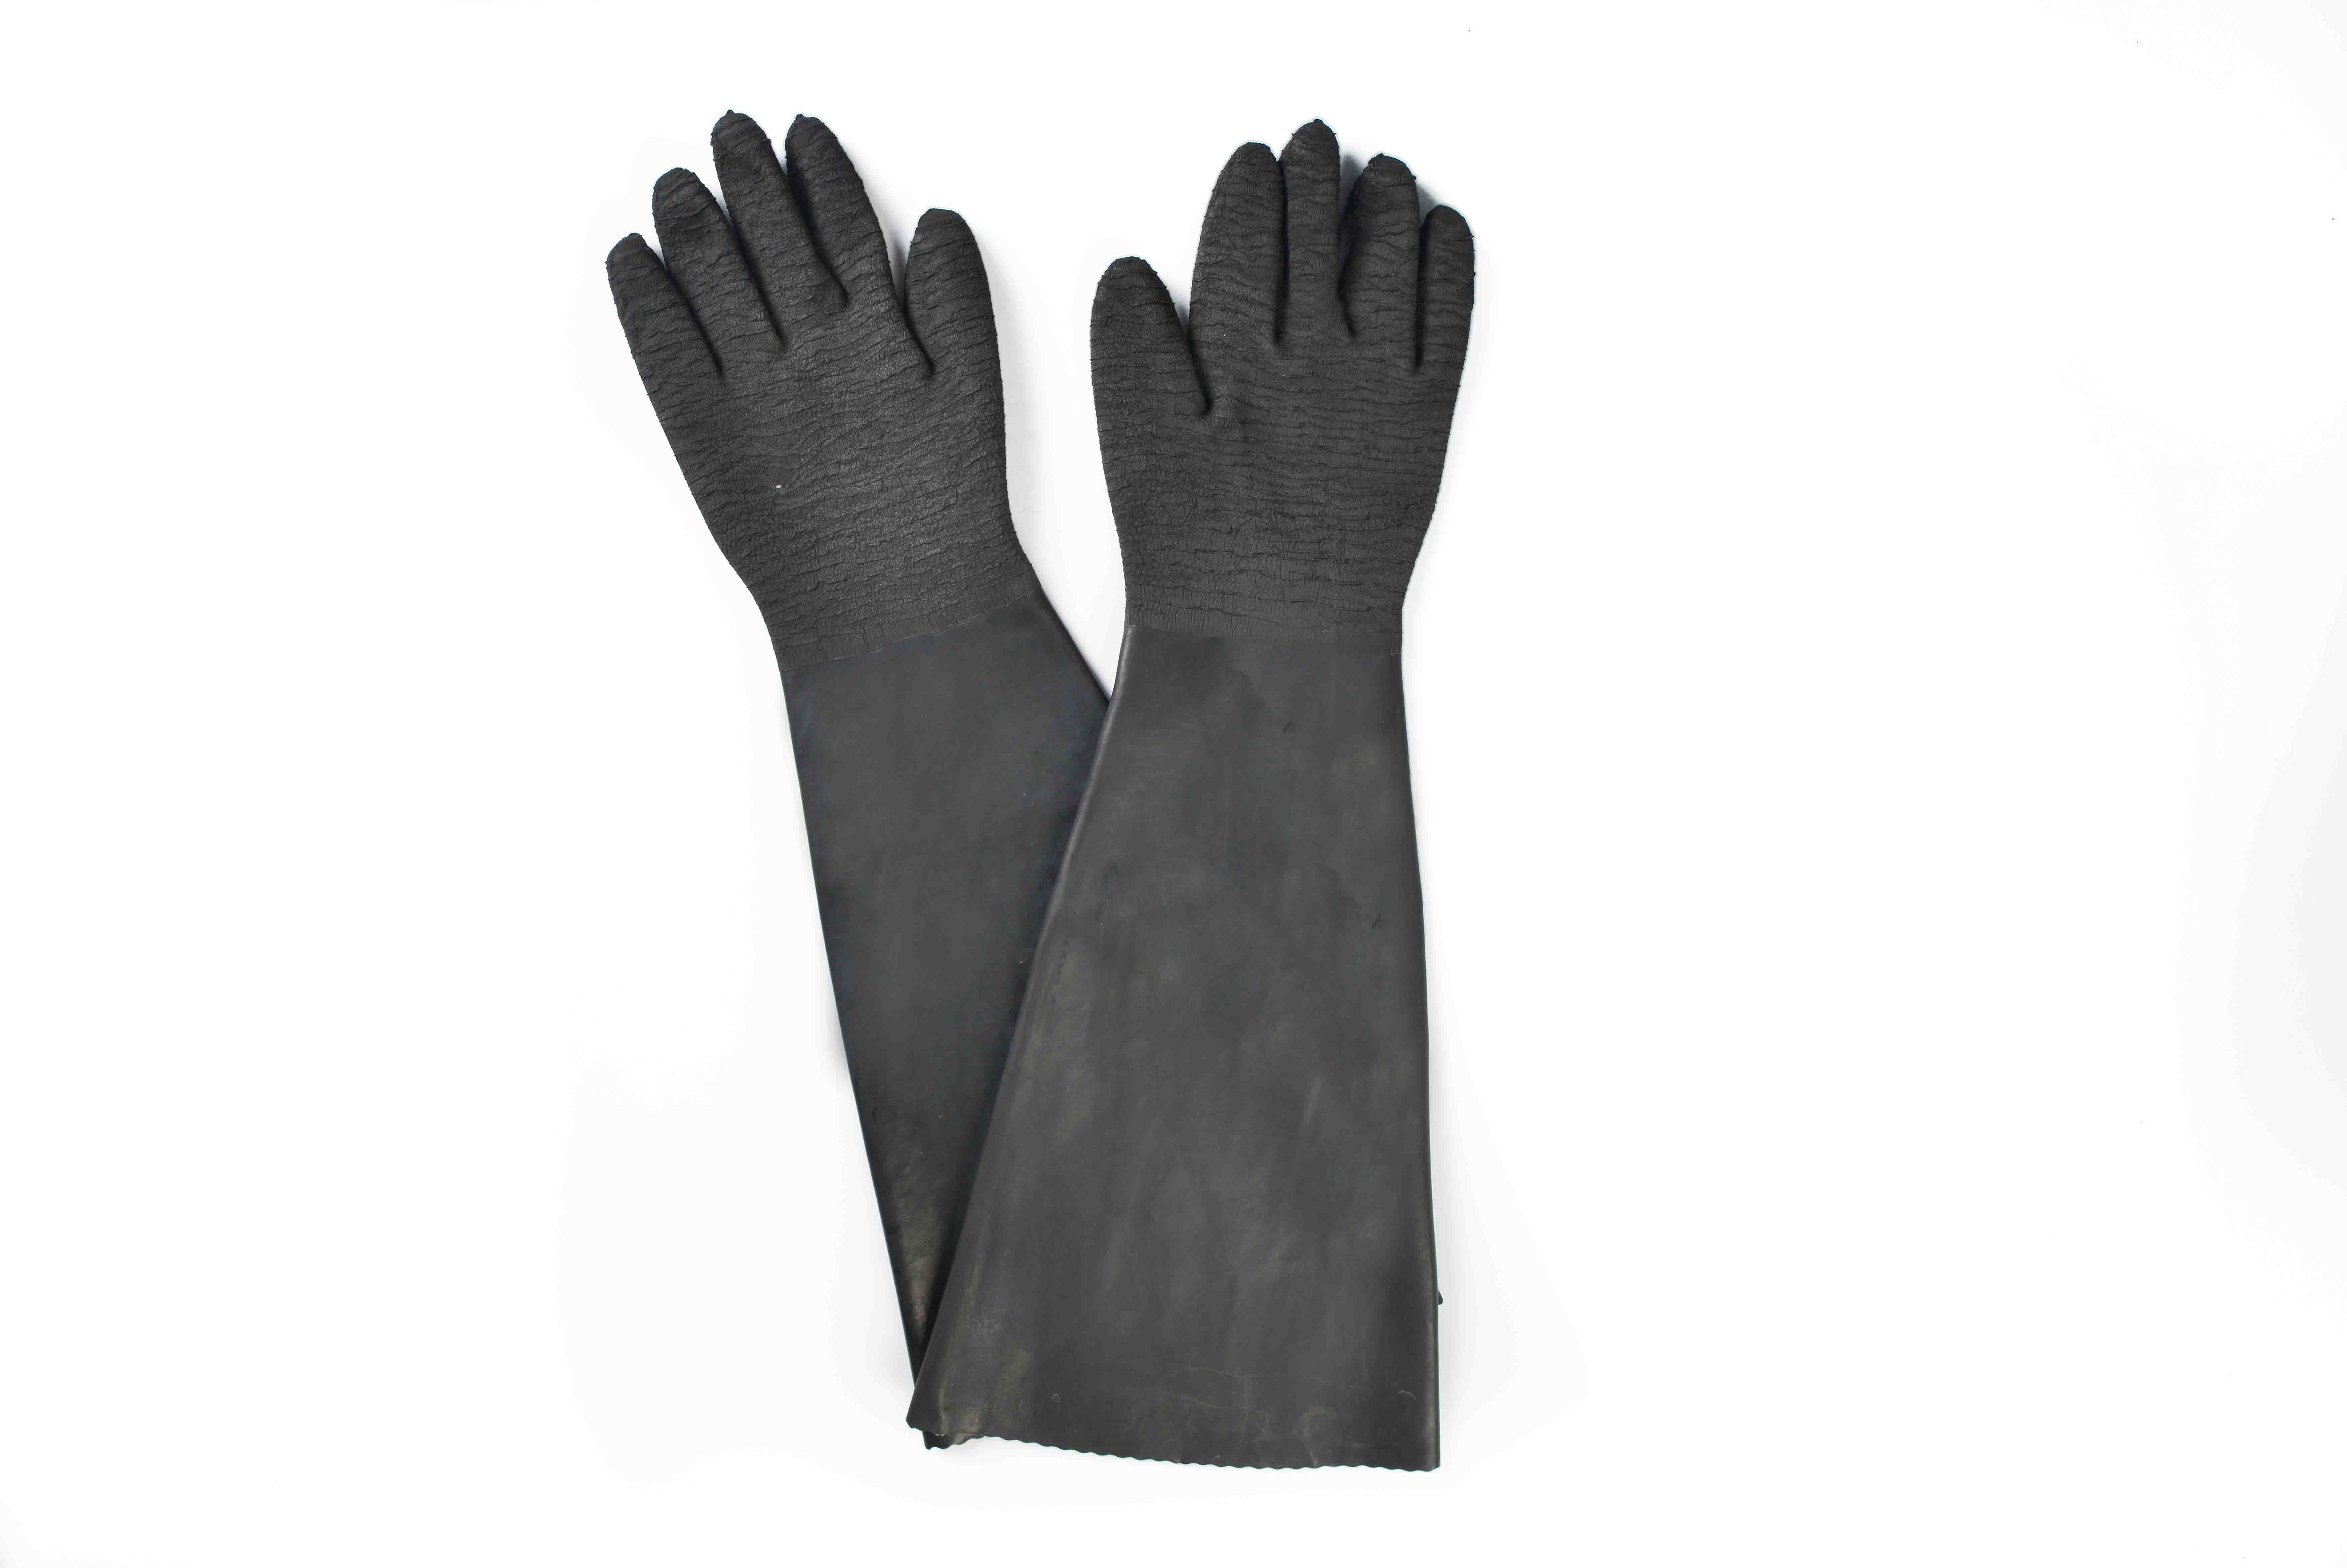 Factory cheap hot 24″ rubber glove with cotton linning-rough finish in Bahamas